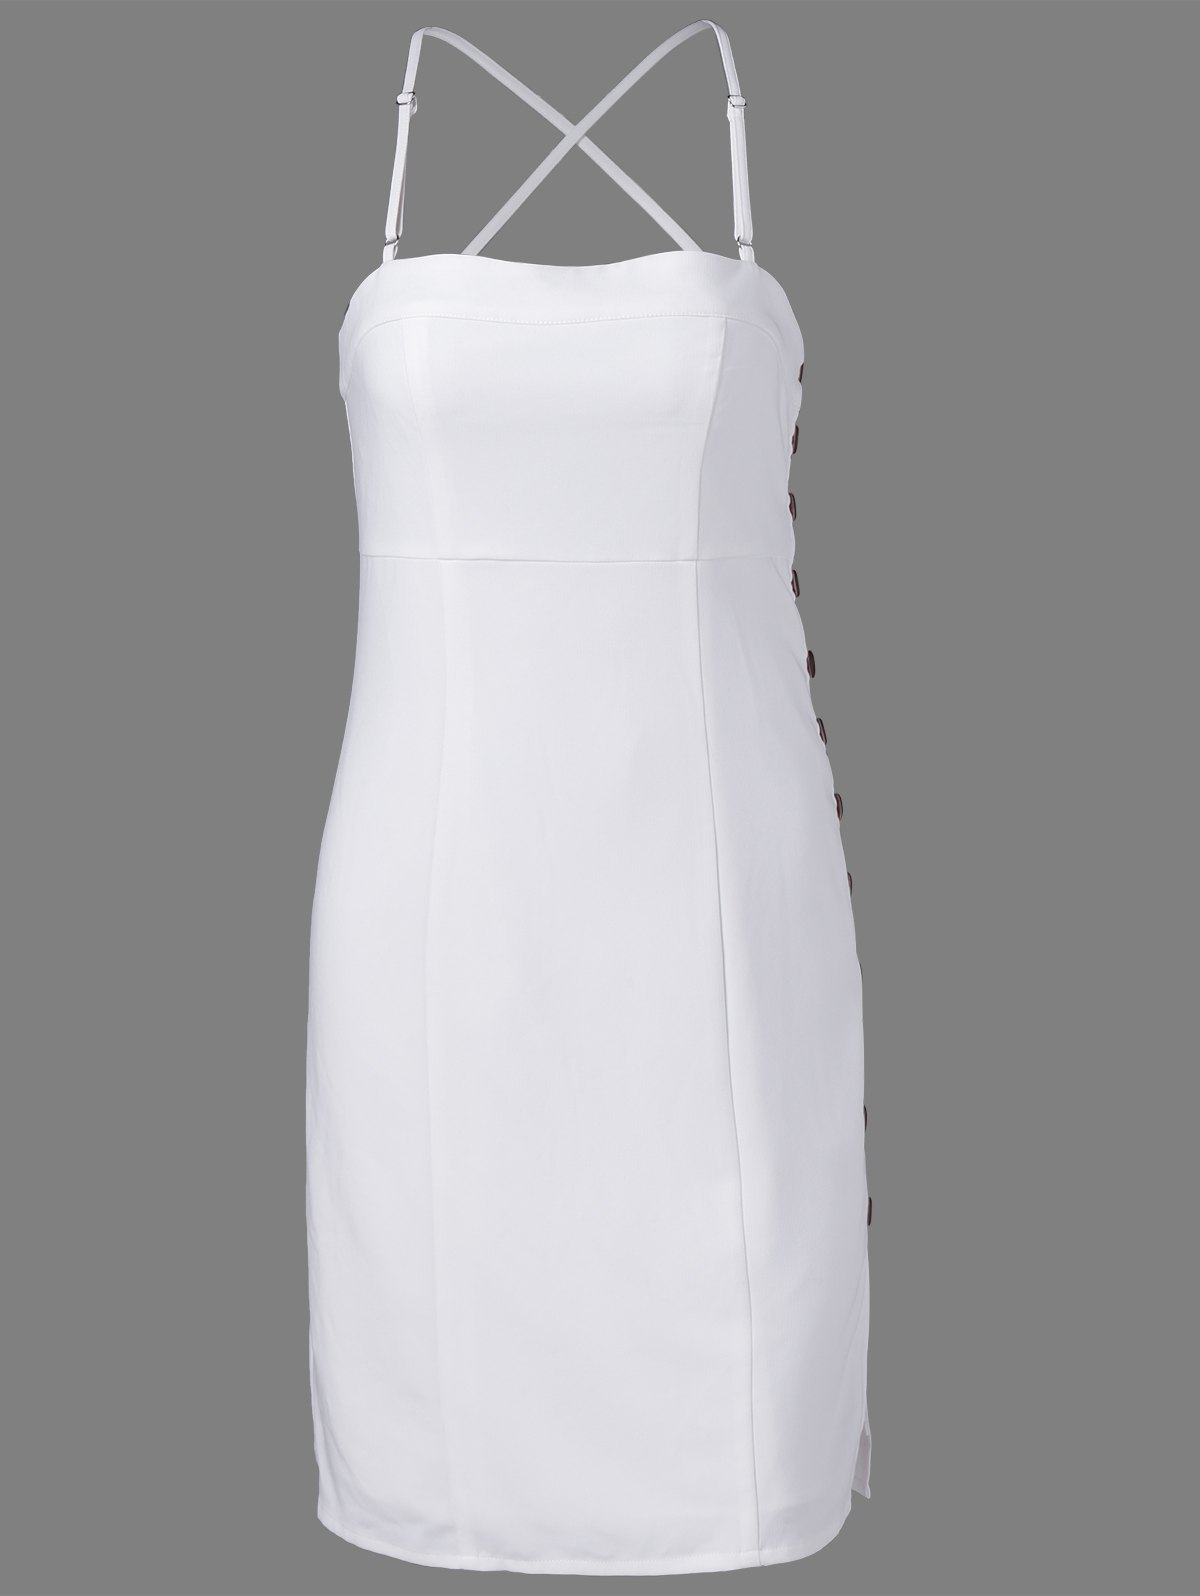 New Fashionable Spaghetti Straps Fastener White Dress For Women